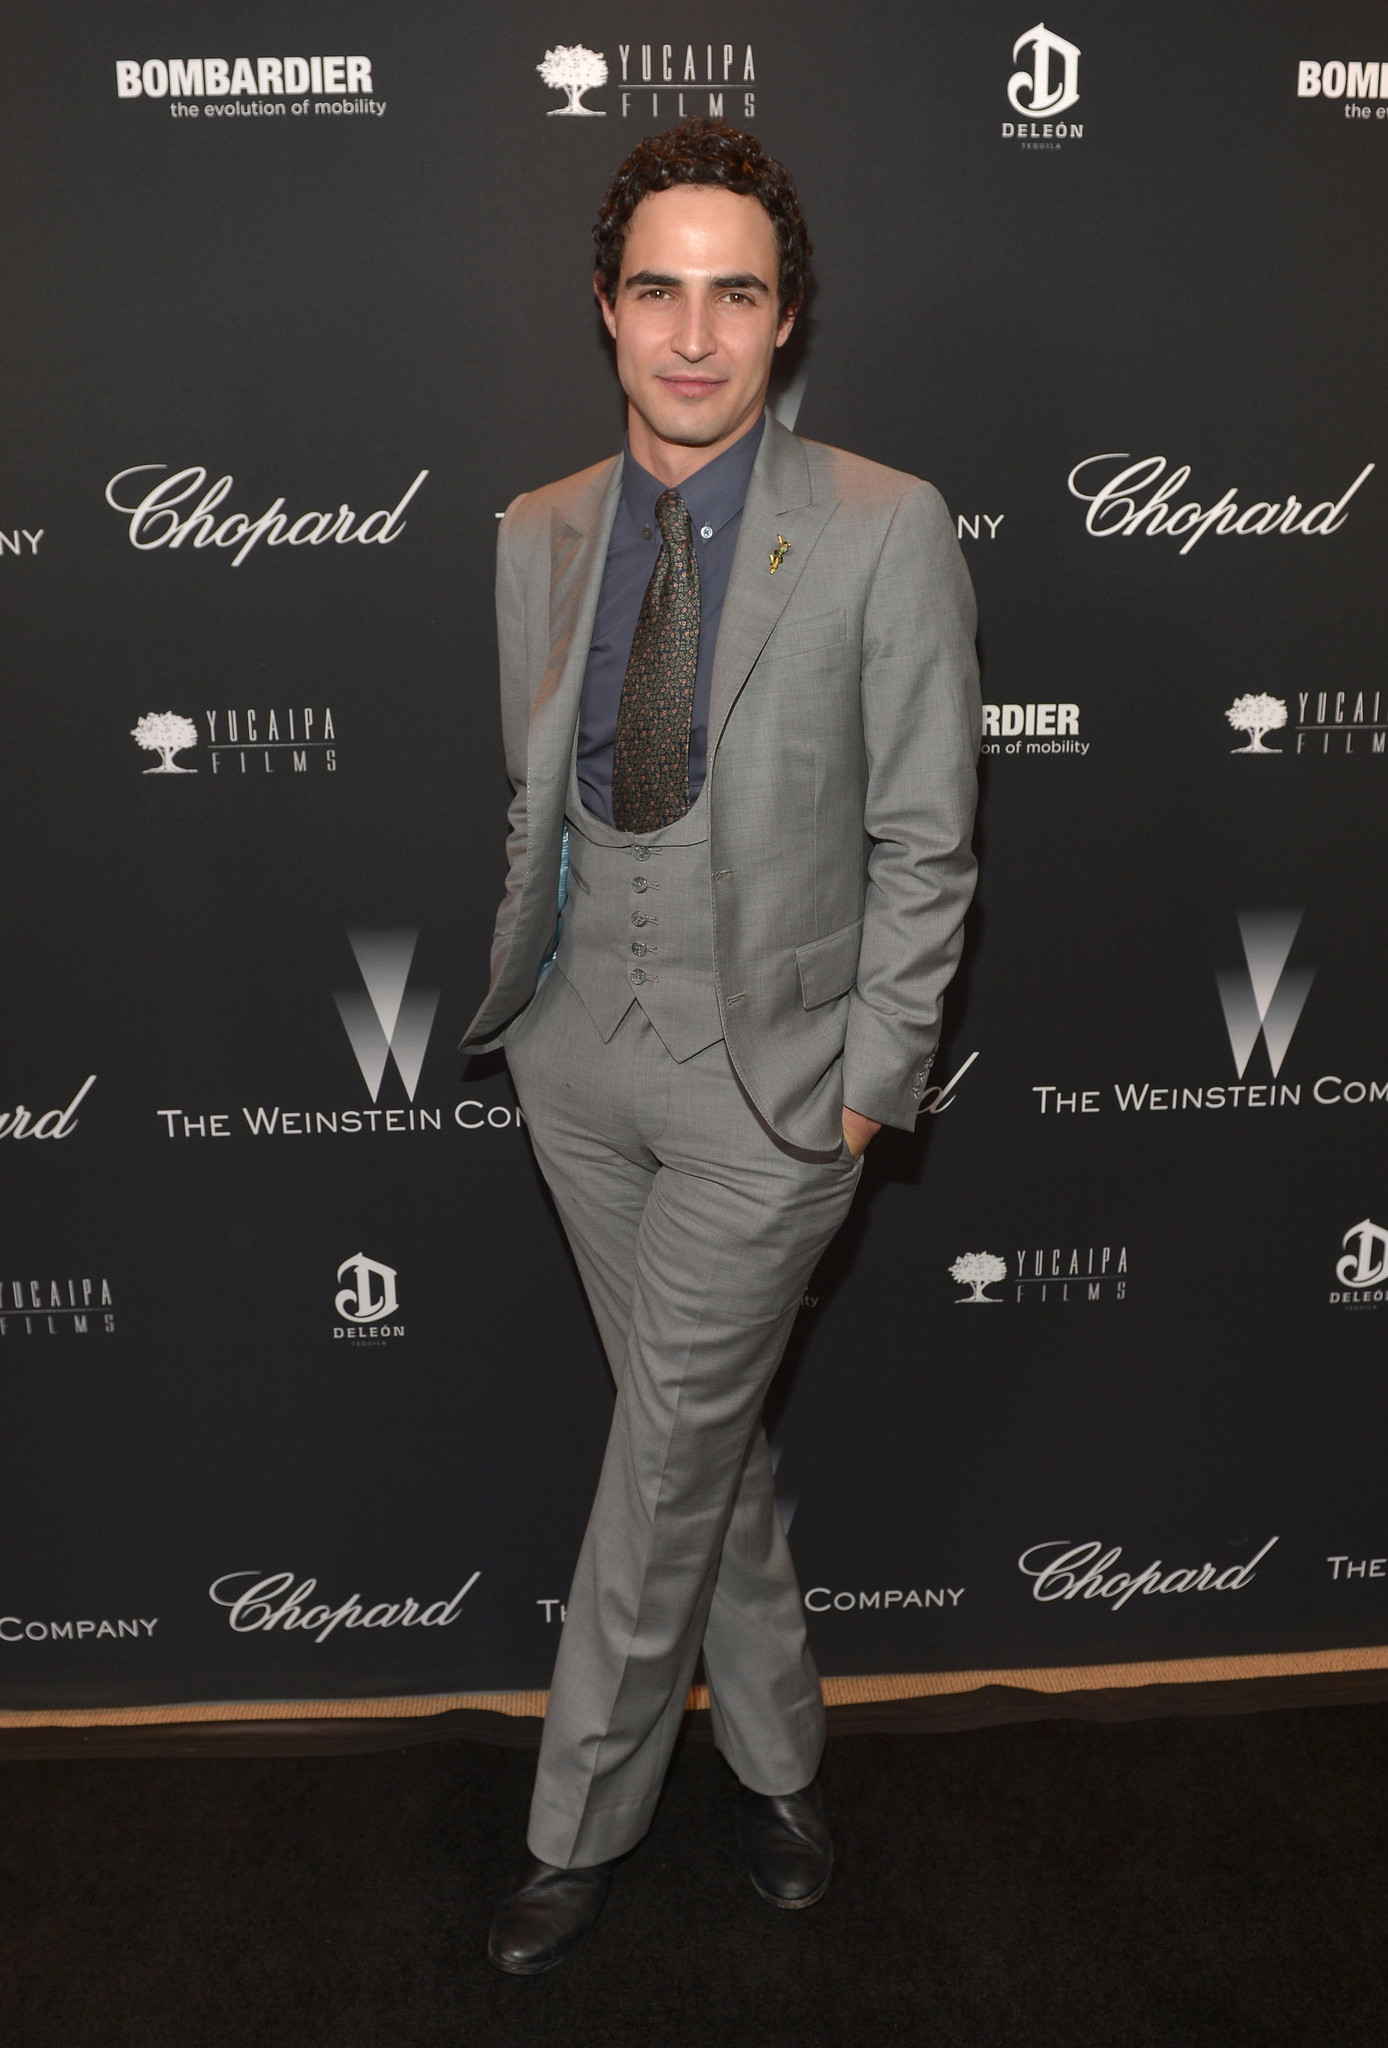 2014 The Weinstein Company's Academy Award party photos: Zac Posen